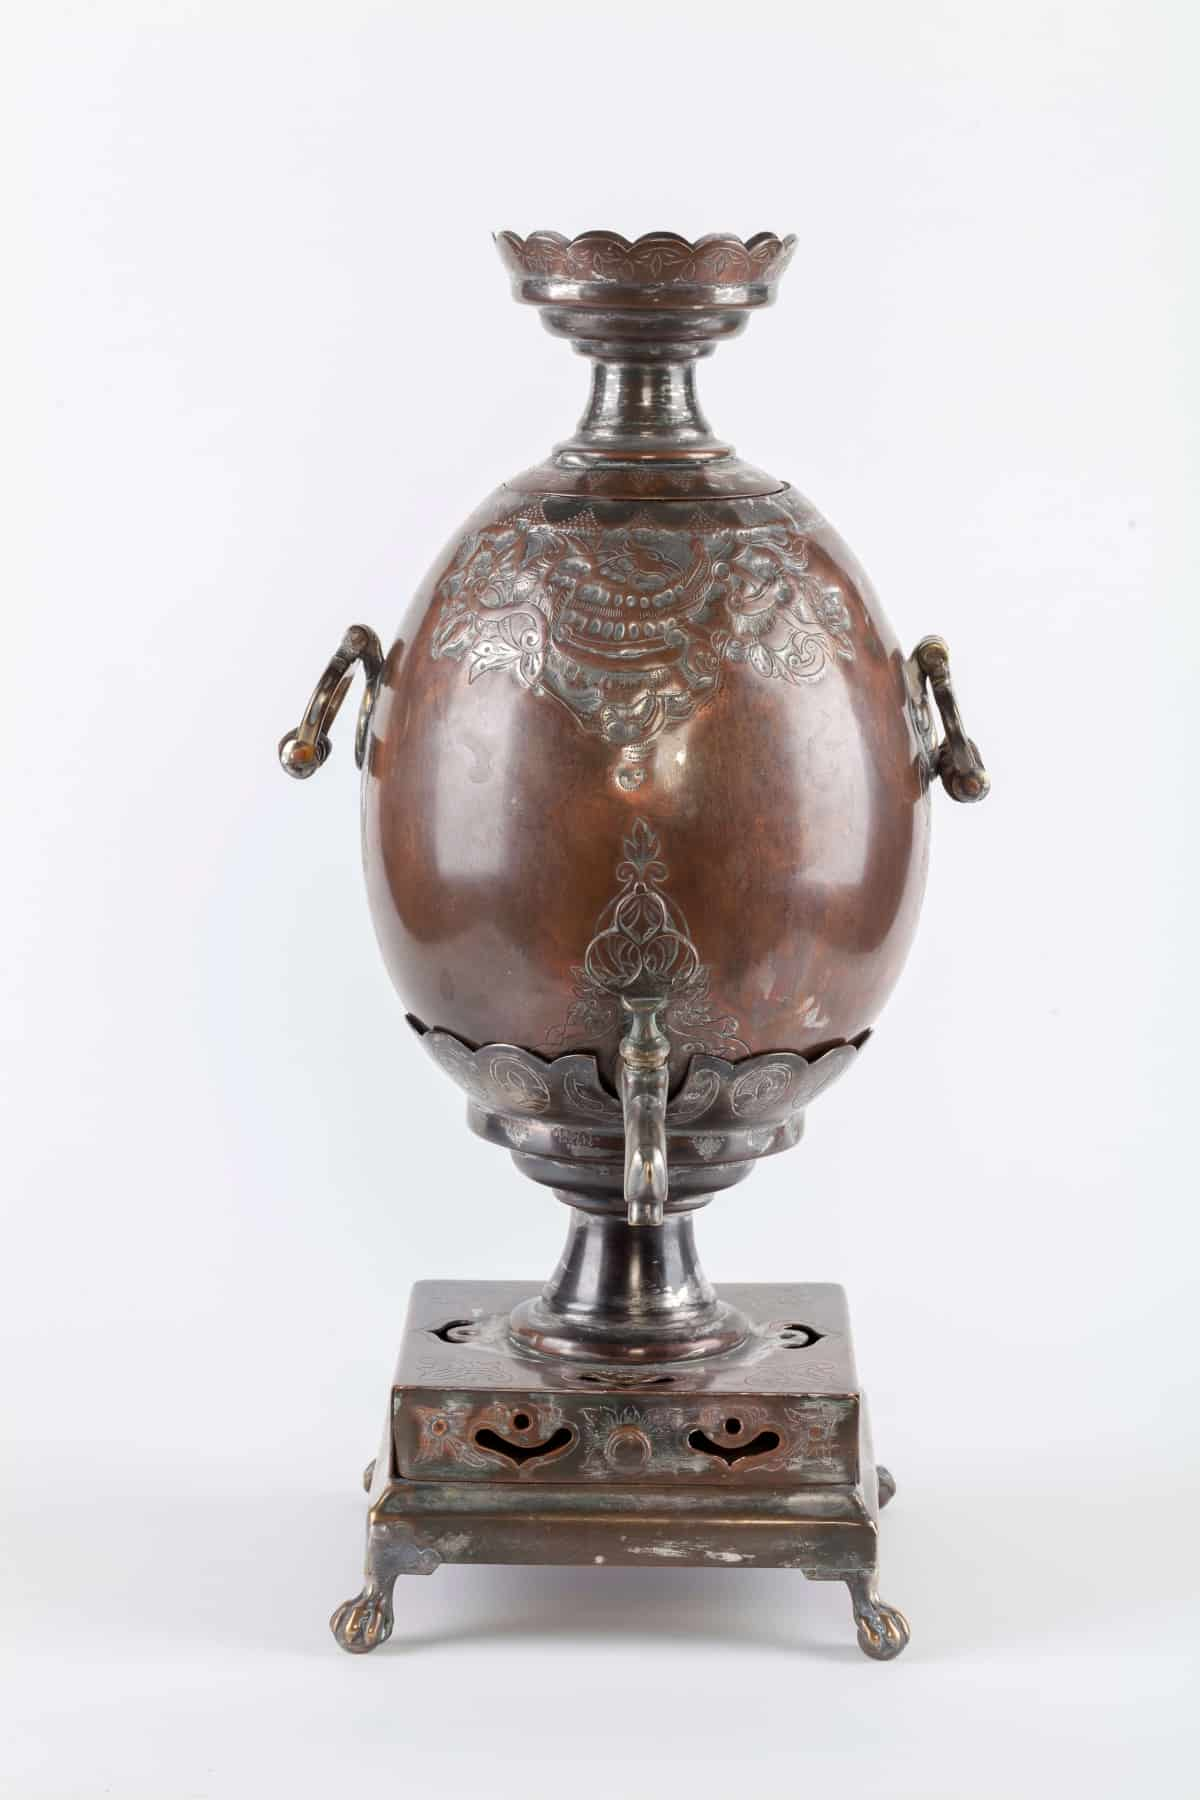 KB 584 | Egg Shaped Samovar, with embossed ornament